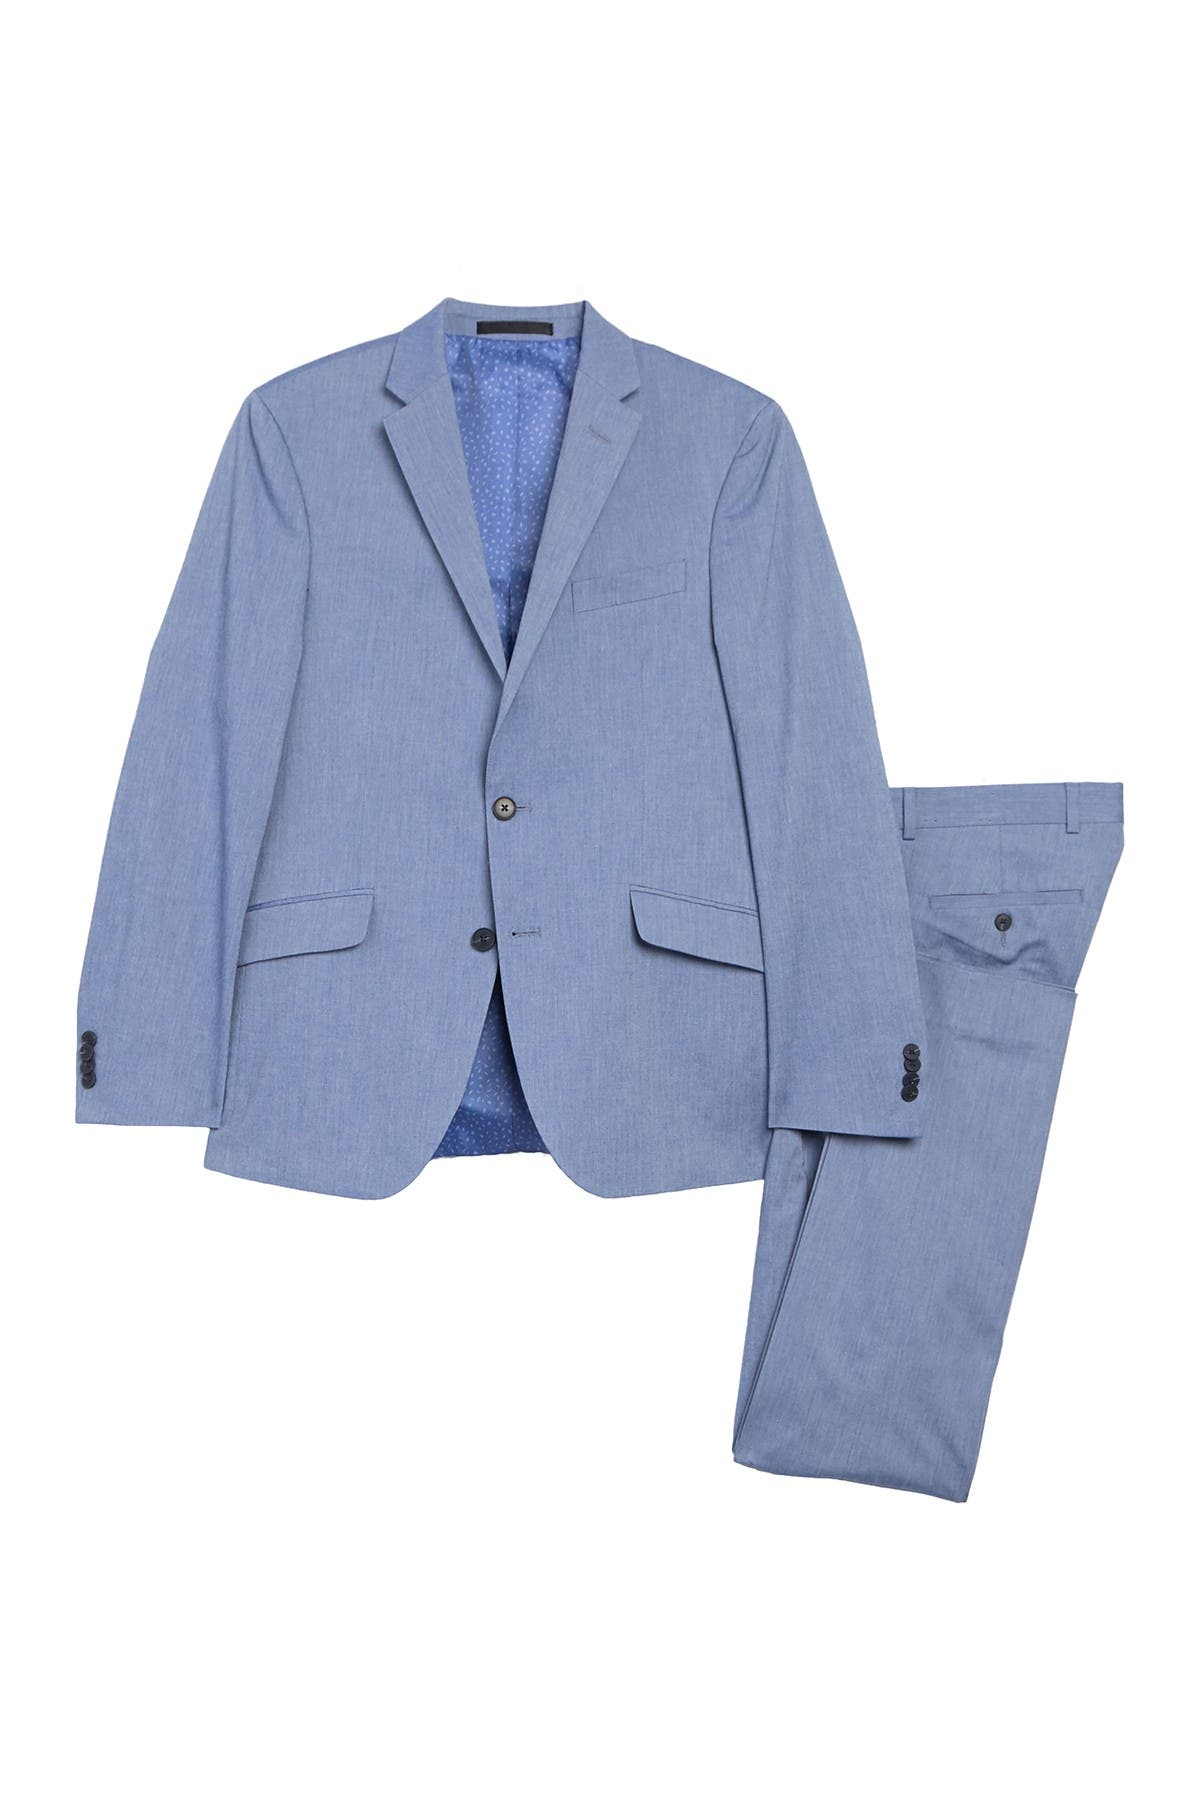 Image of Kenneth Cole Reaction Chambray Stretch Performance Modern Fit 2-Piece Suit